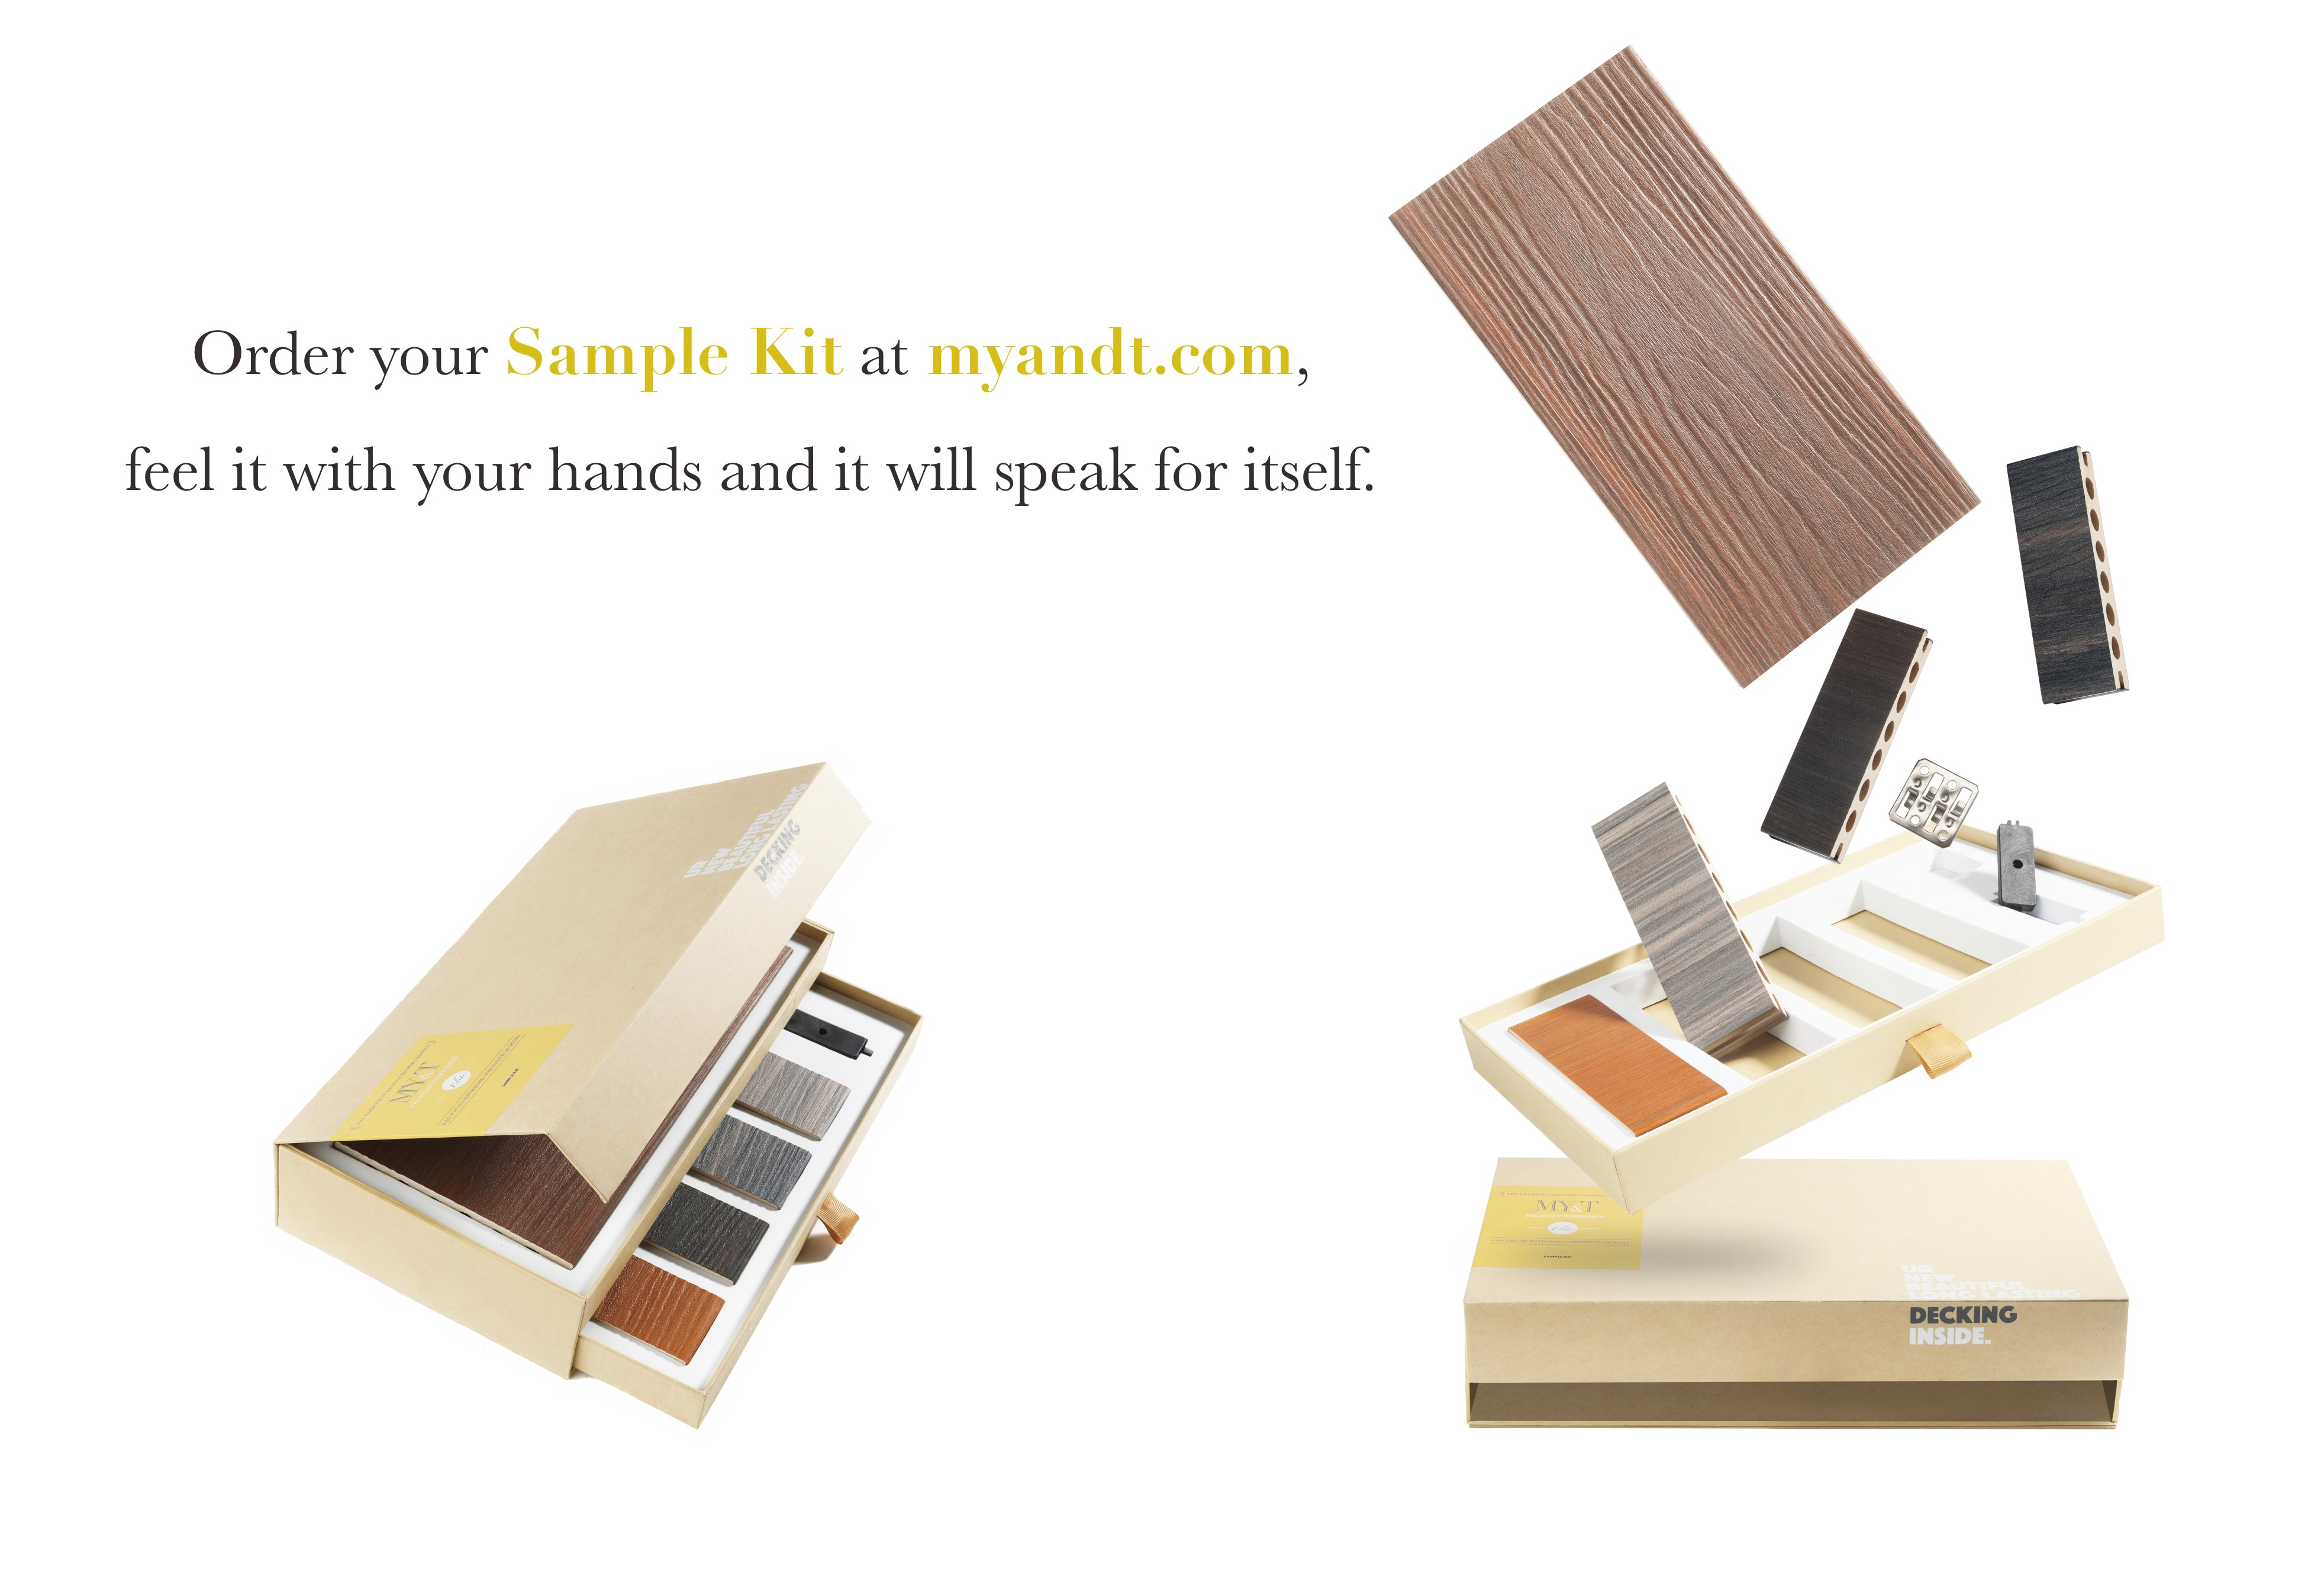 Order your Sample Kit at myandt.com, feel it with your hands and it will speak for itself.